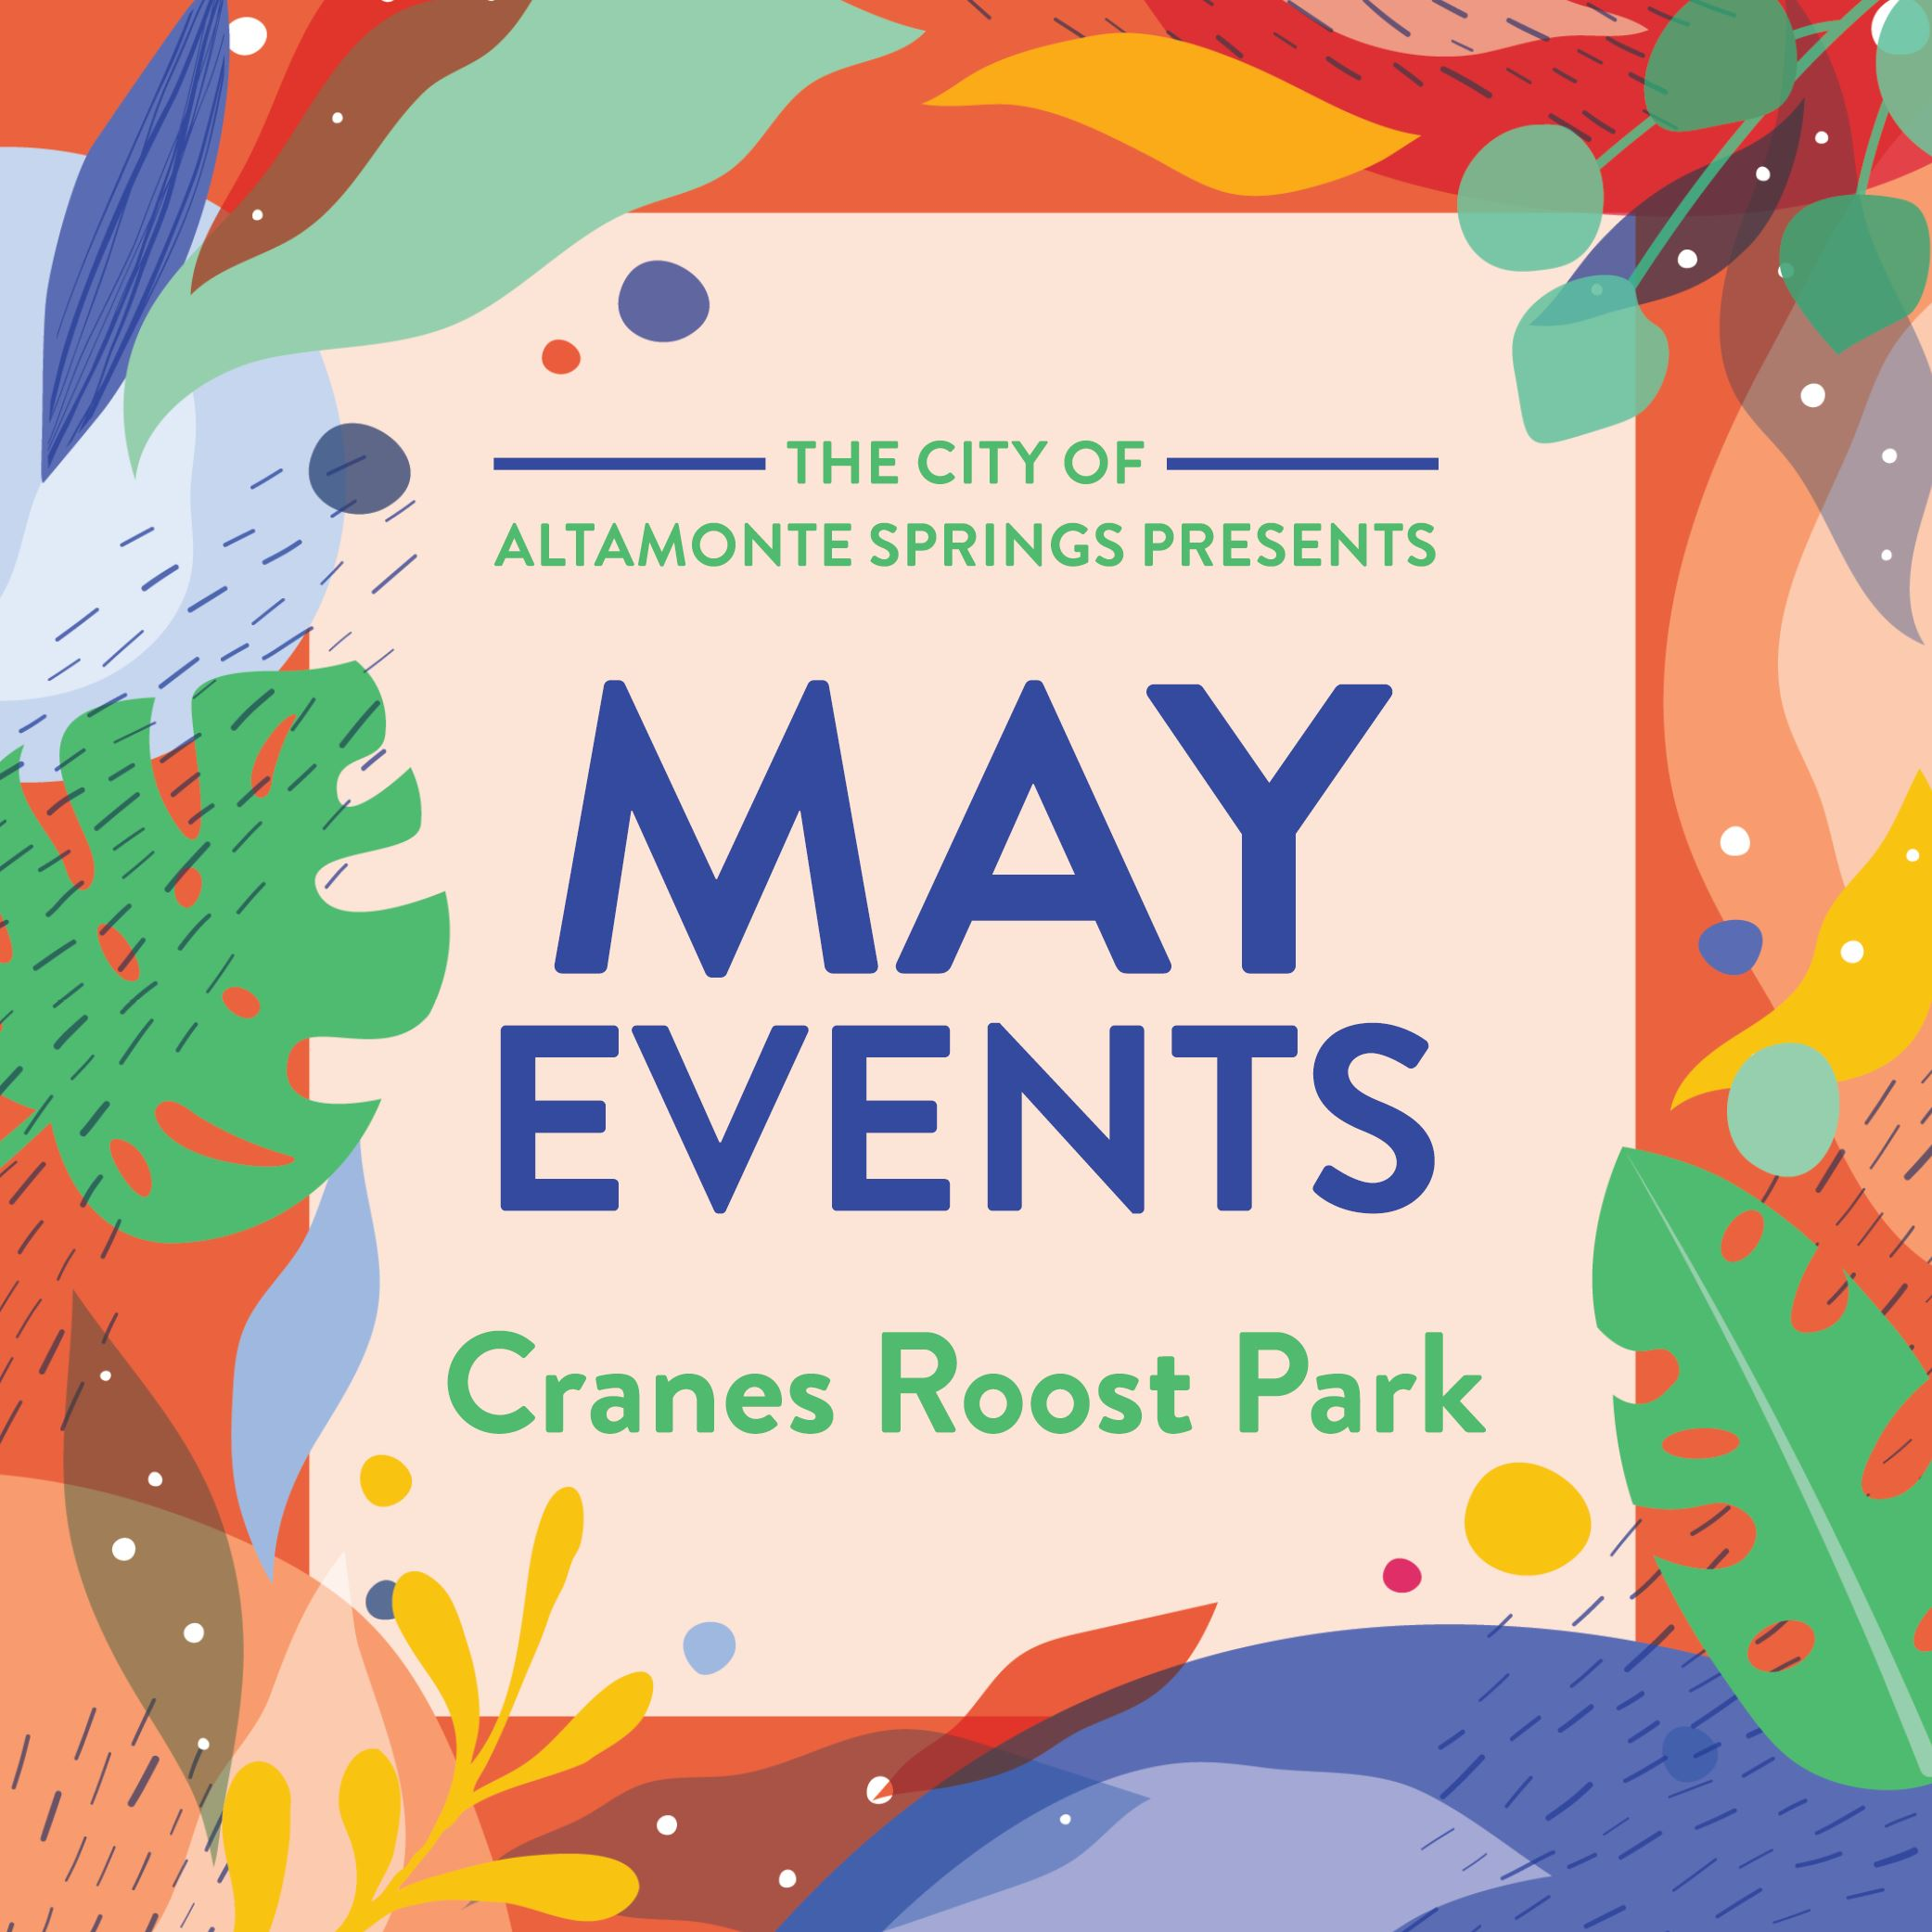 May Events Cranes Roost Park